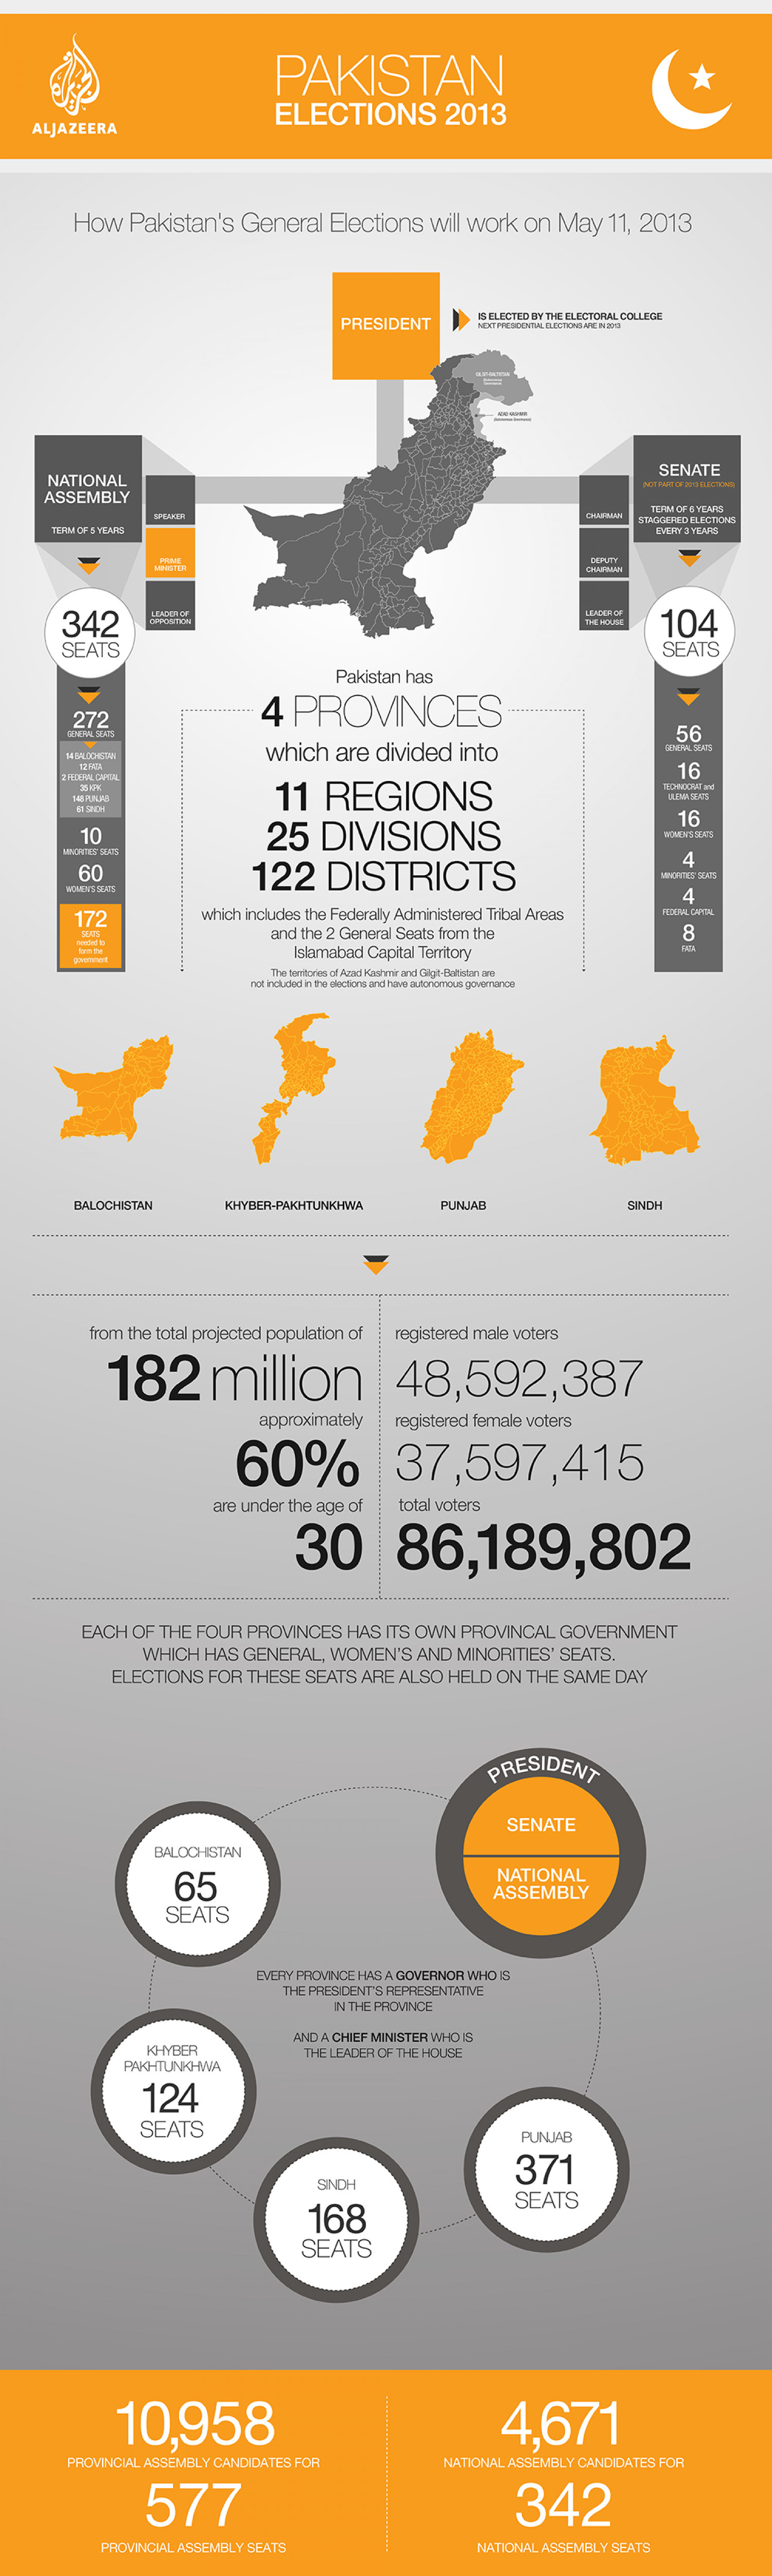 Pakistan Elections 2013 Infographic